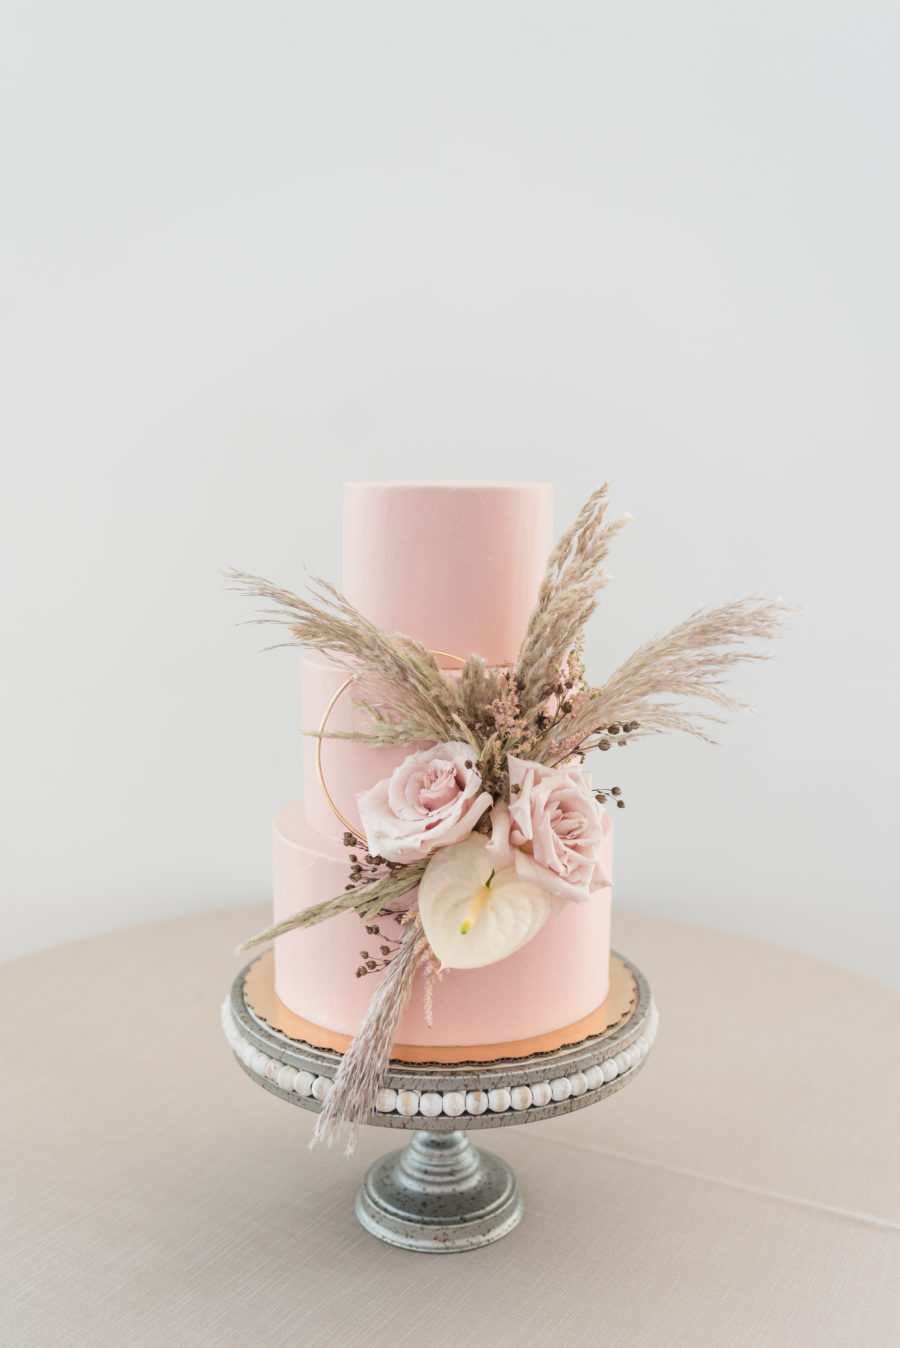 Pink Wedding Cake with Pampas Grass: Organic Eco-Friendly Wedding Styled Shoot featured on Nashville Bride Guide